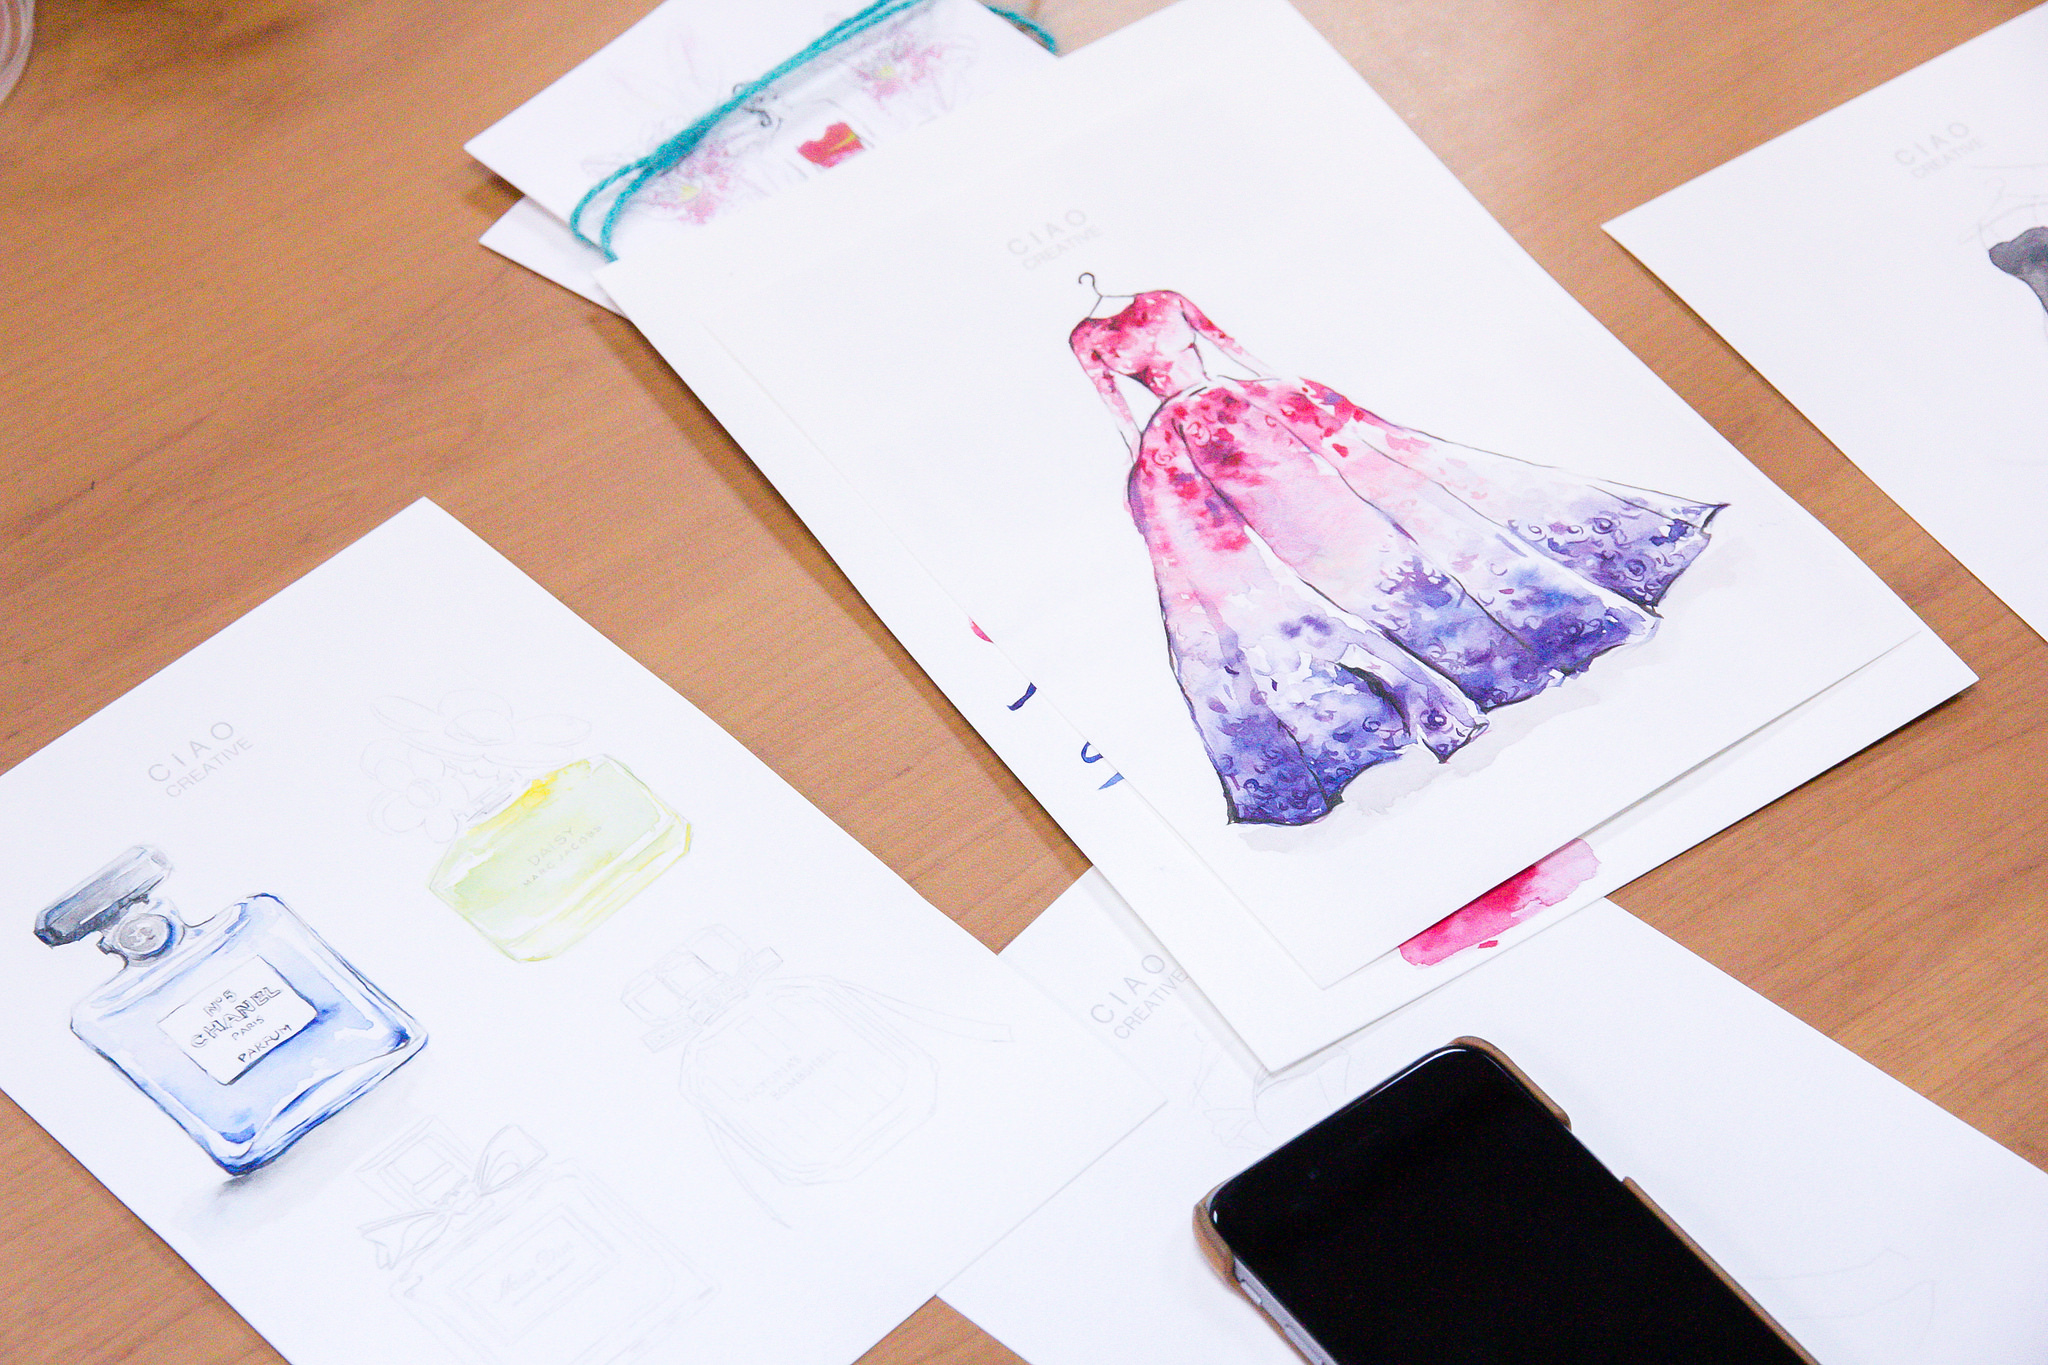 A stunningElie Saab Illustration by one of the workshop attendees